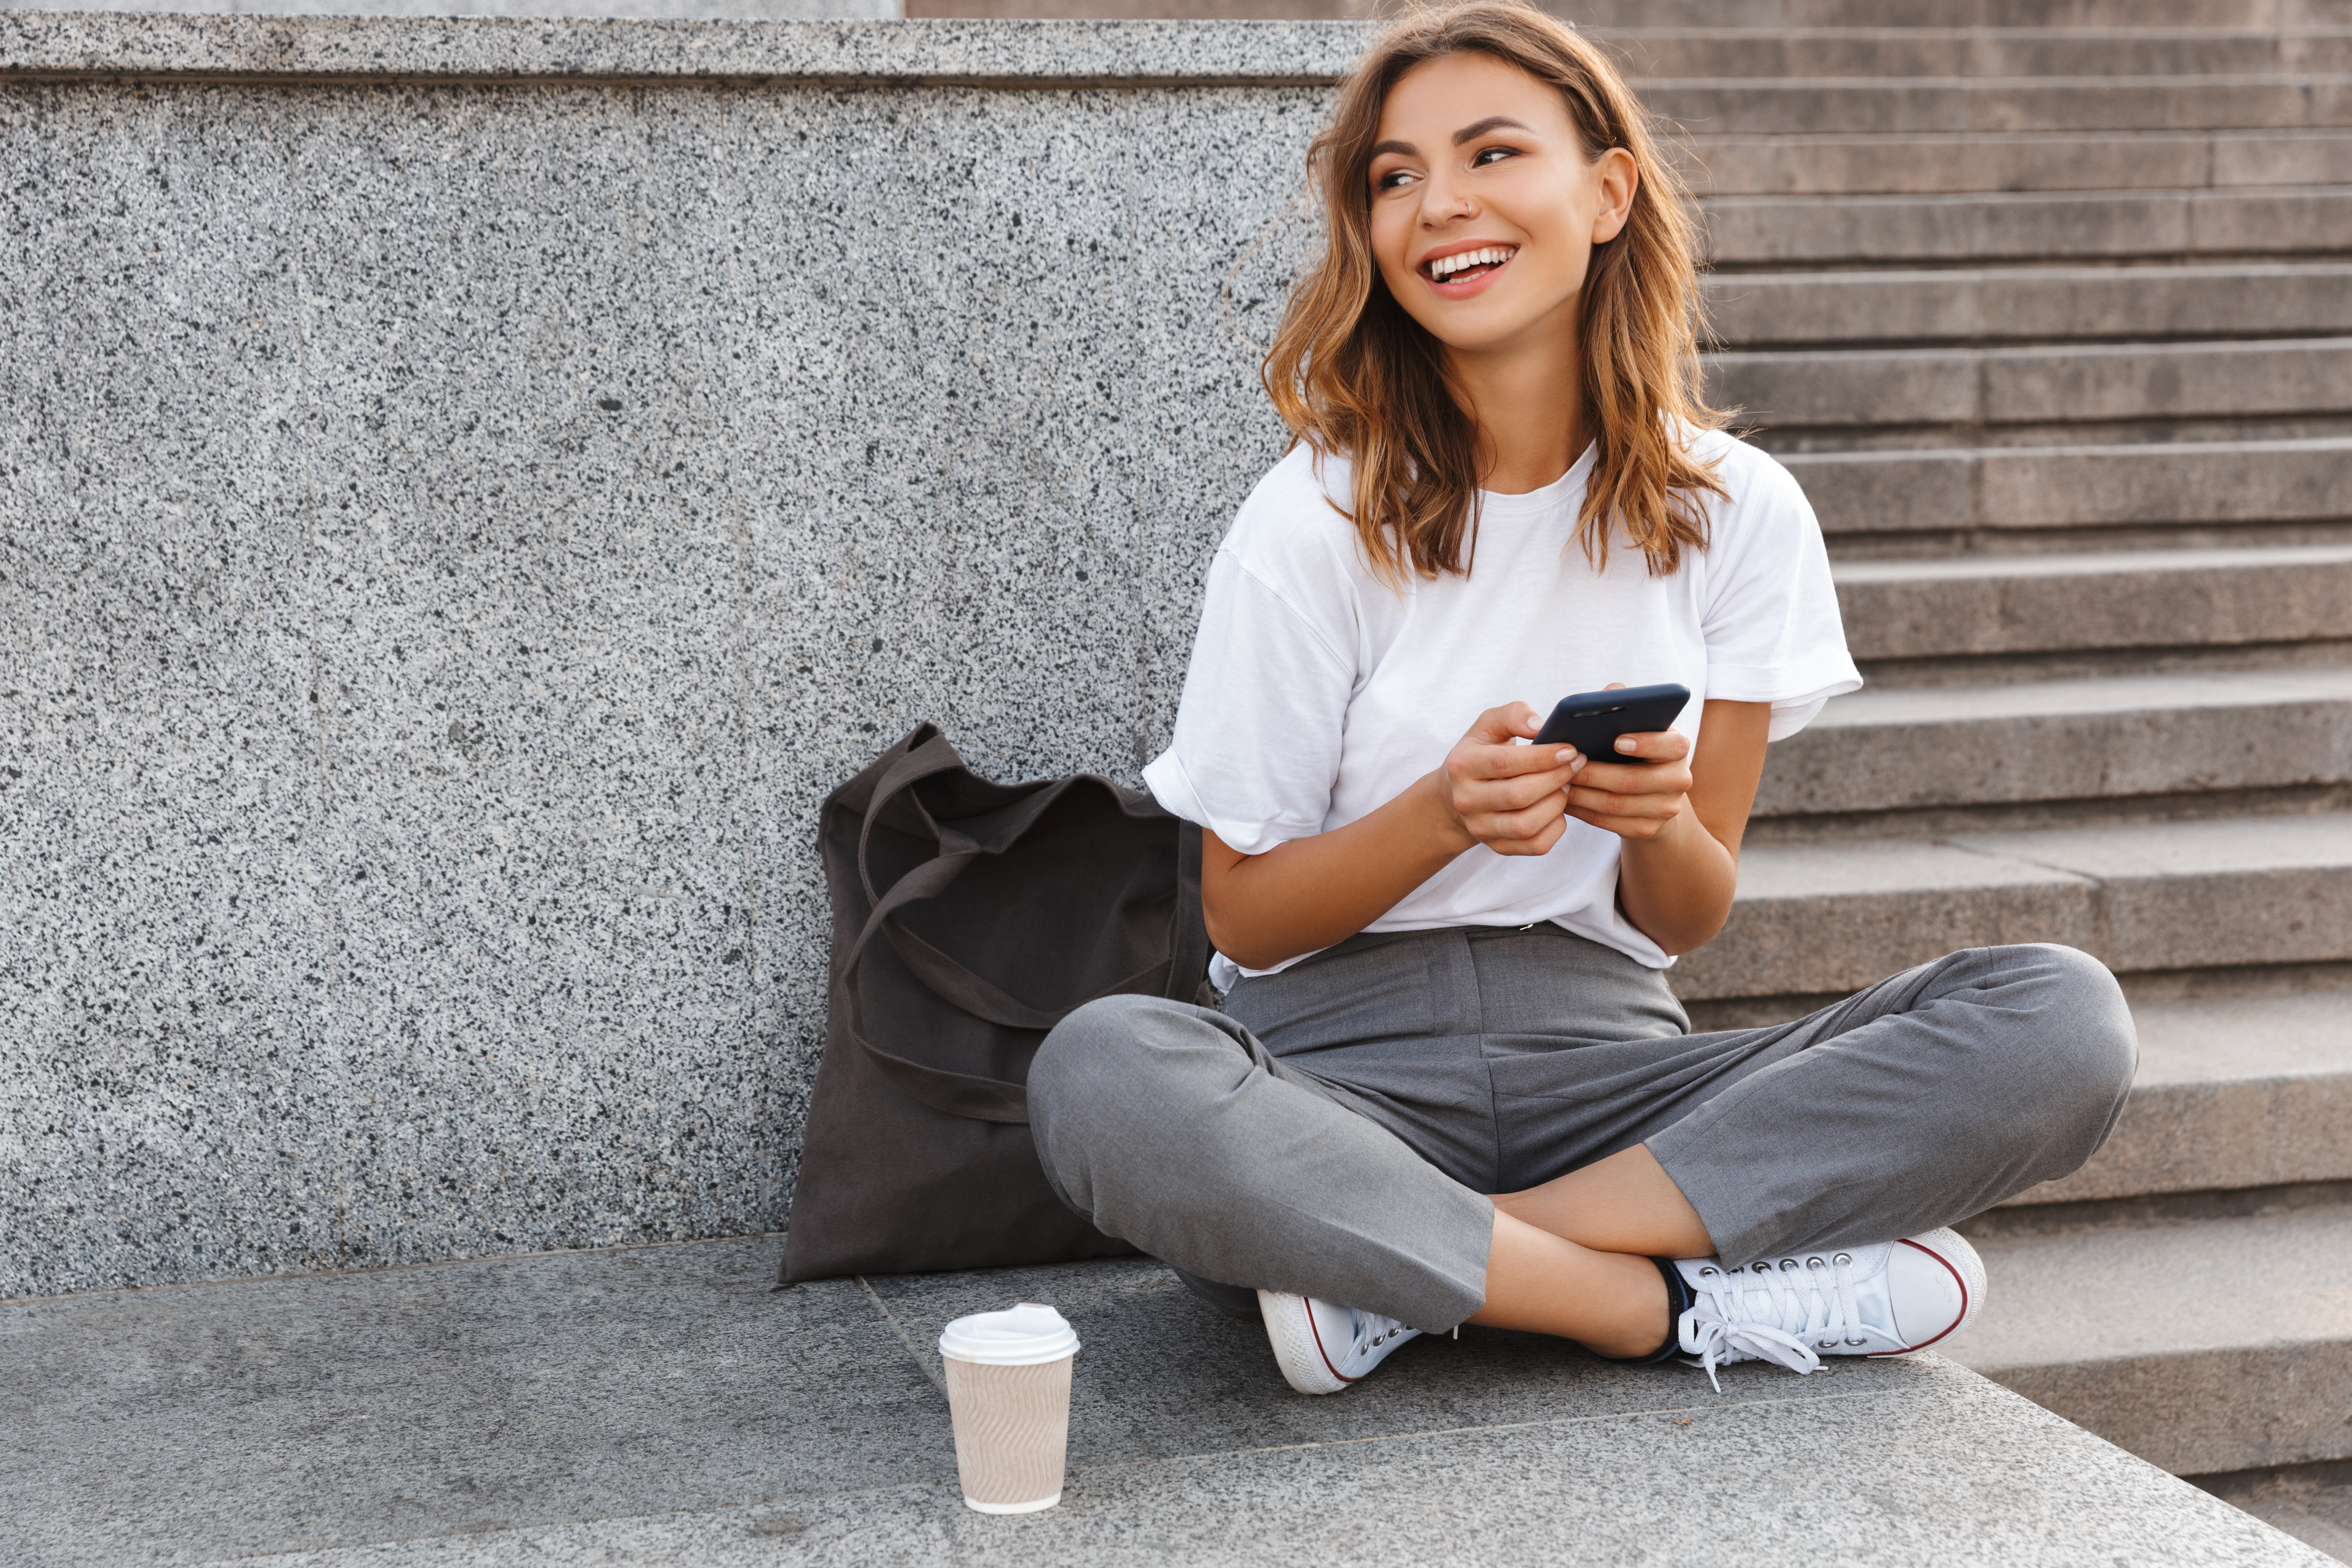 Girl sitting cross-legged outdoors holding a phone